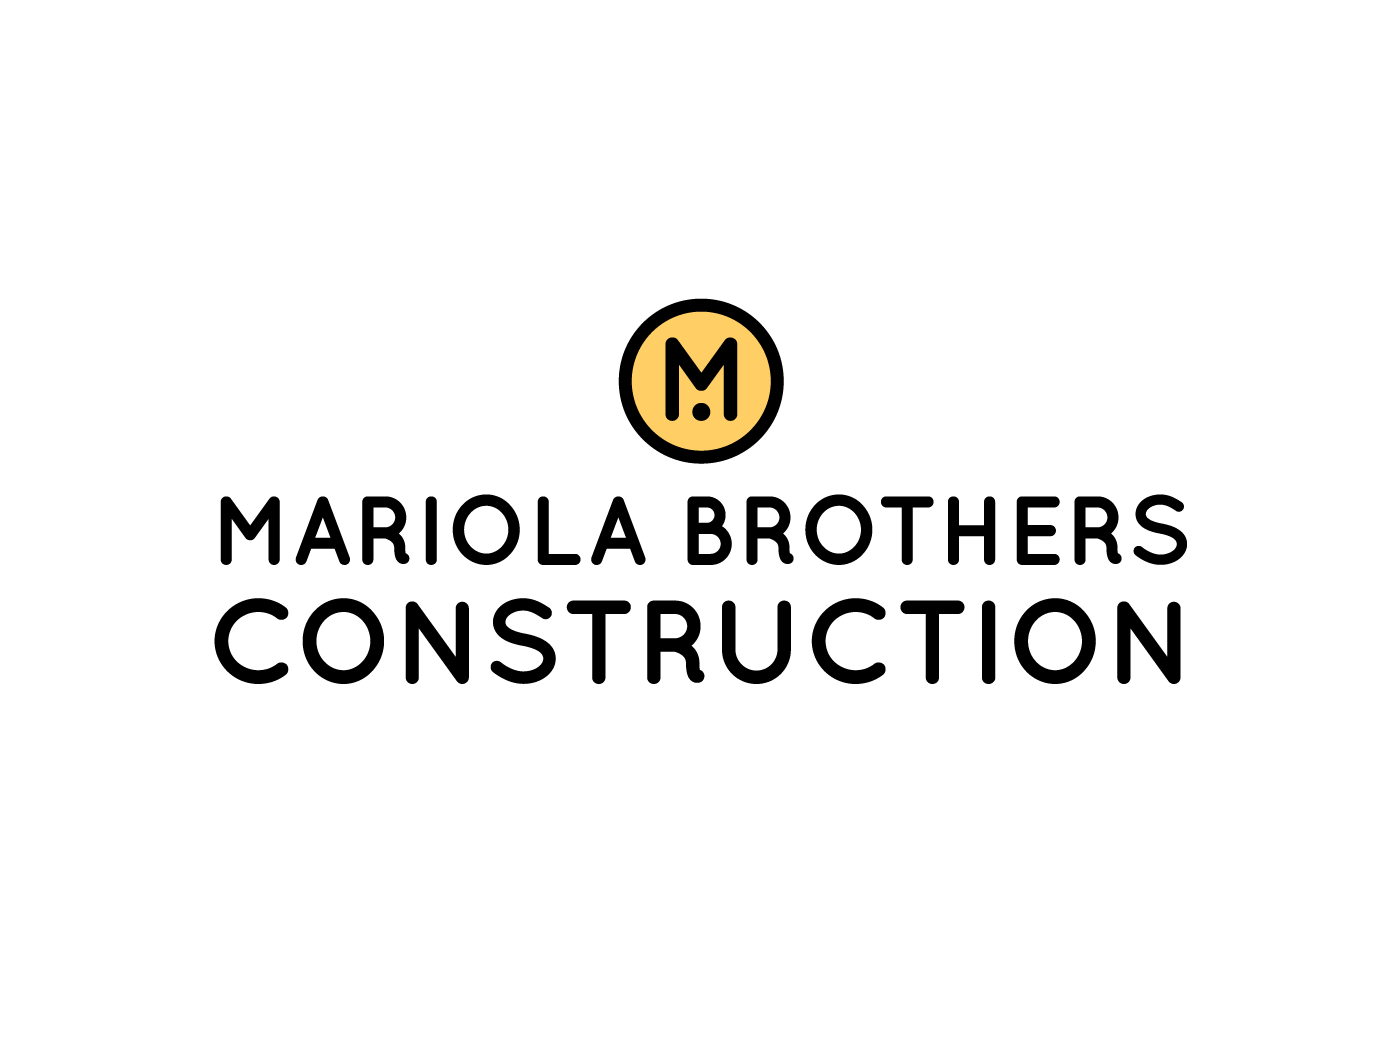 Mariola Brothers Construction